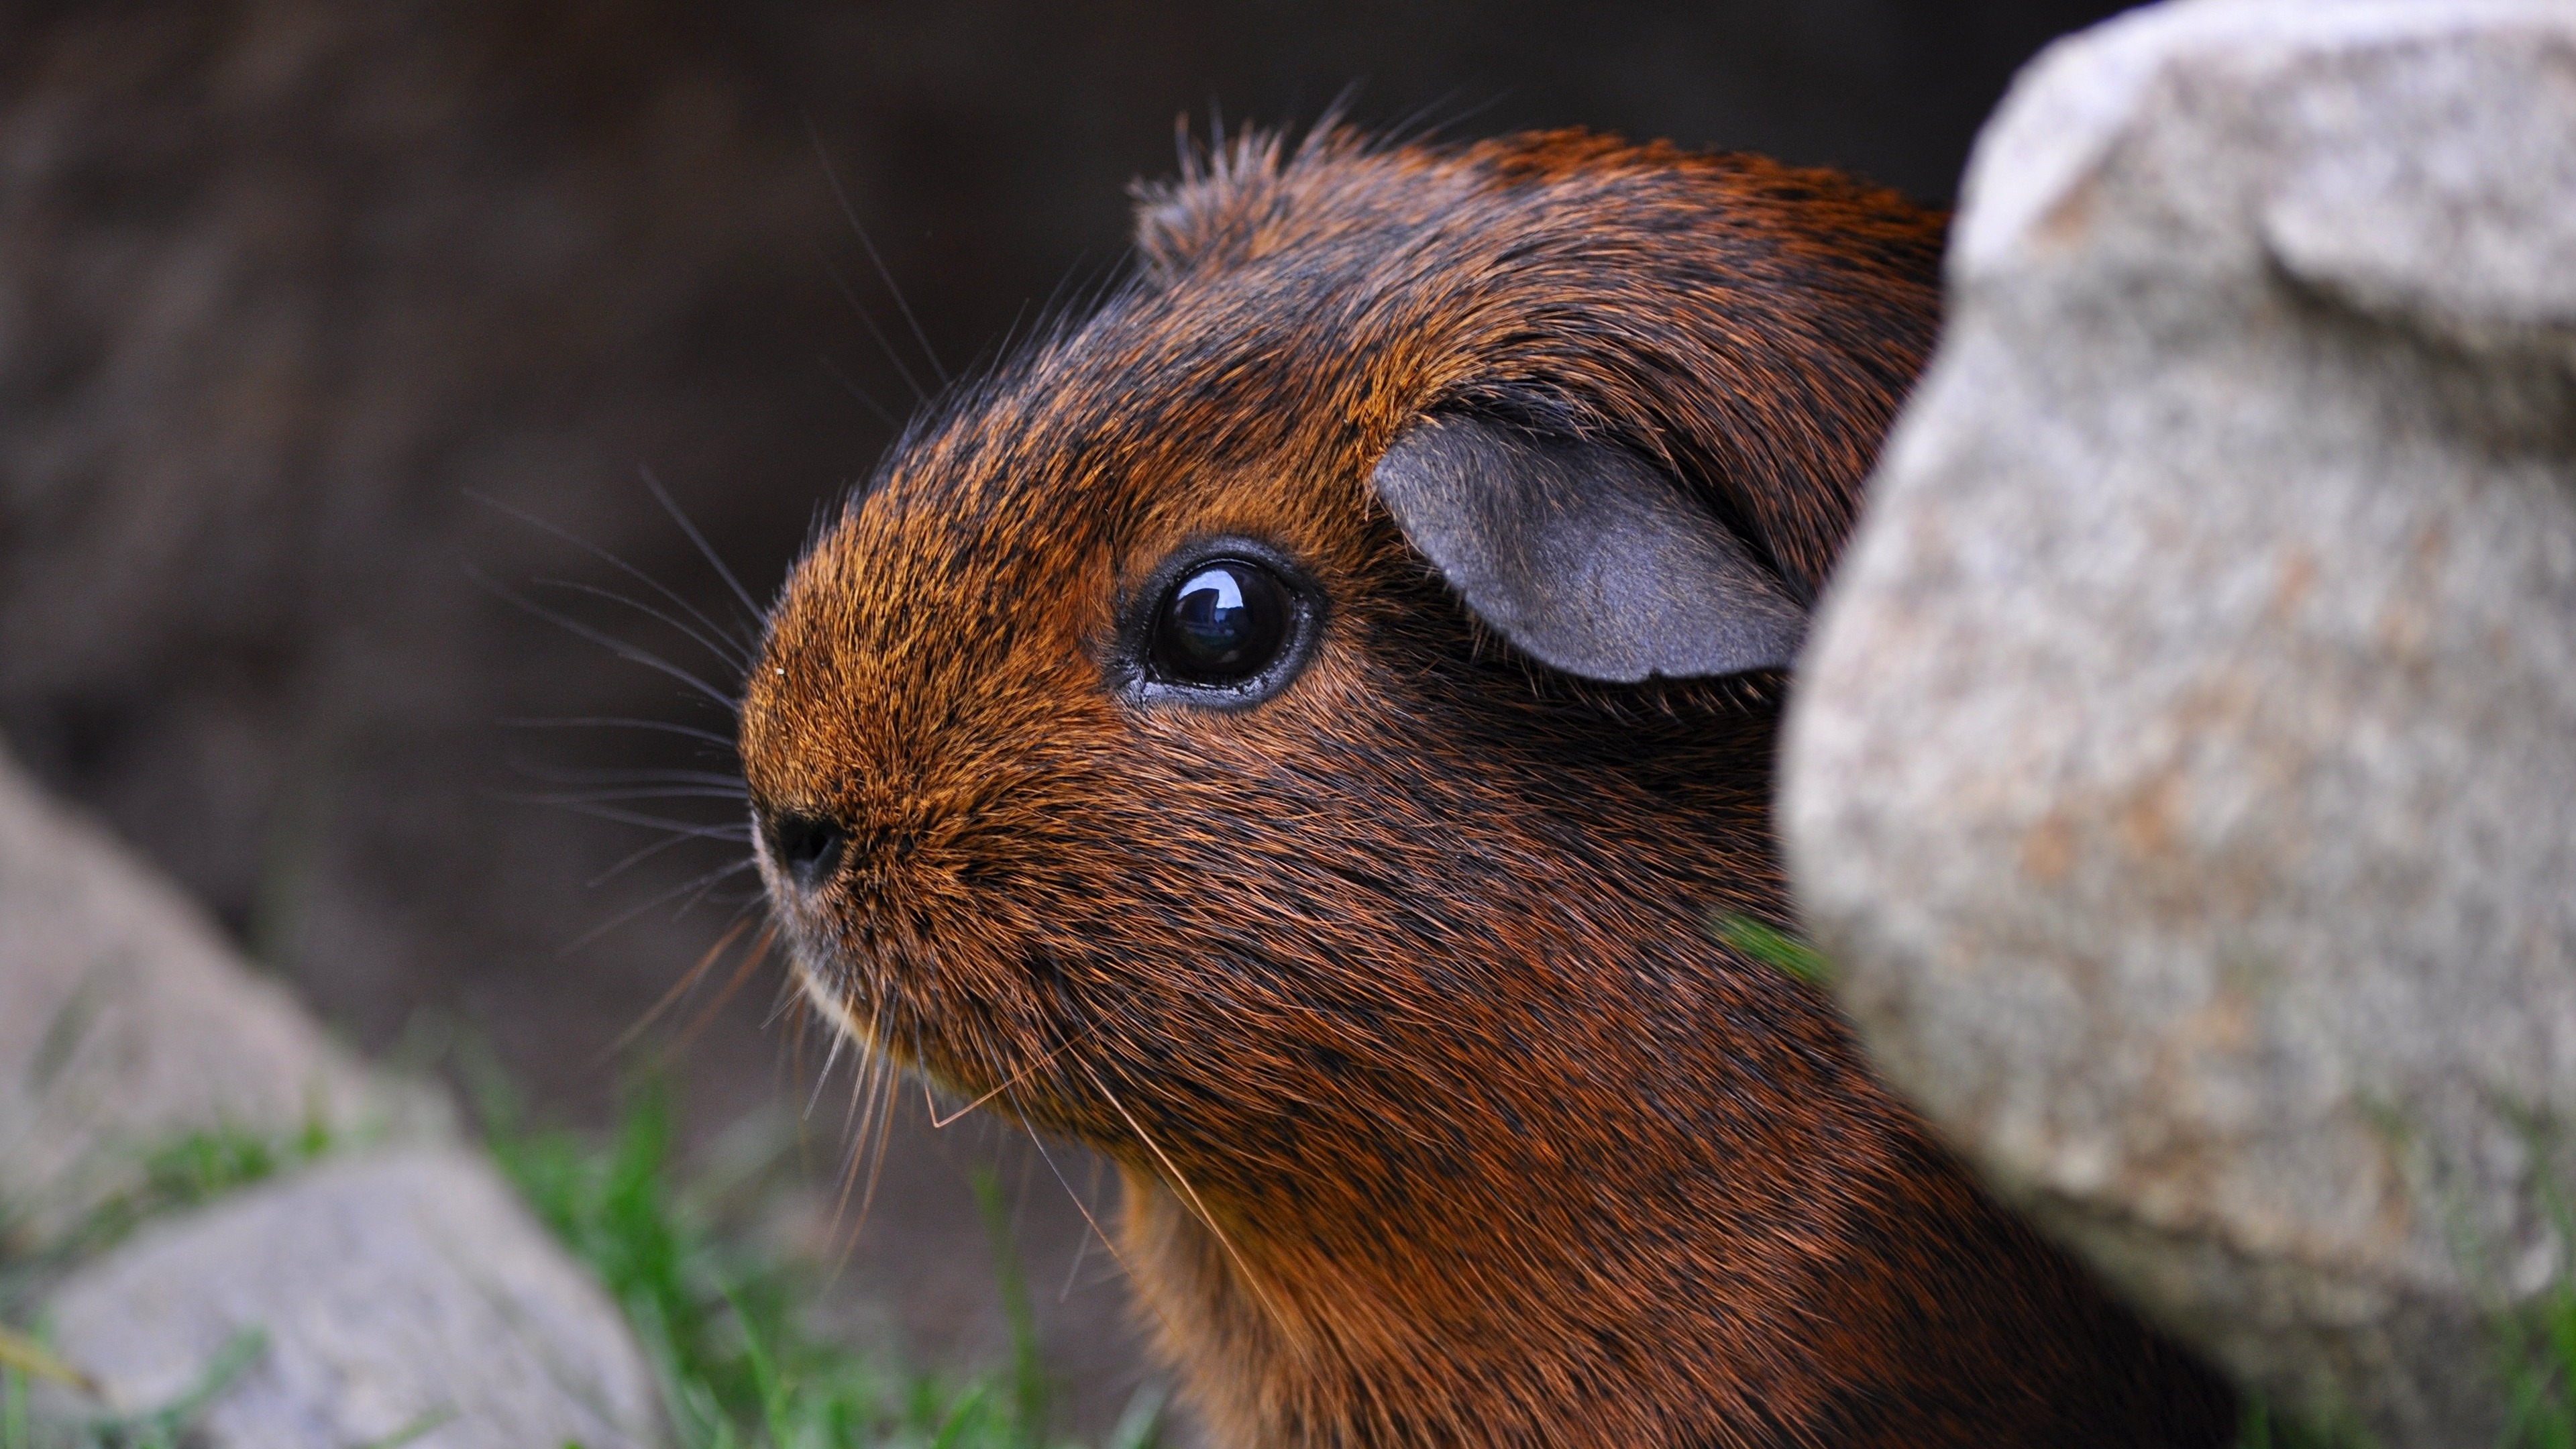 guinea pig sitting rodent 4k 1542242582 - guinea pig, sitting, rodent 4k - Sitting, rodent, guinea pig